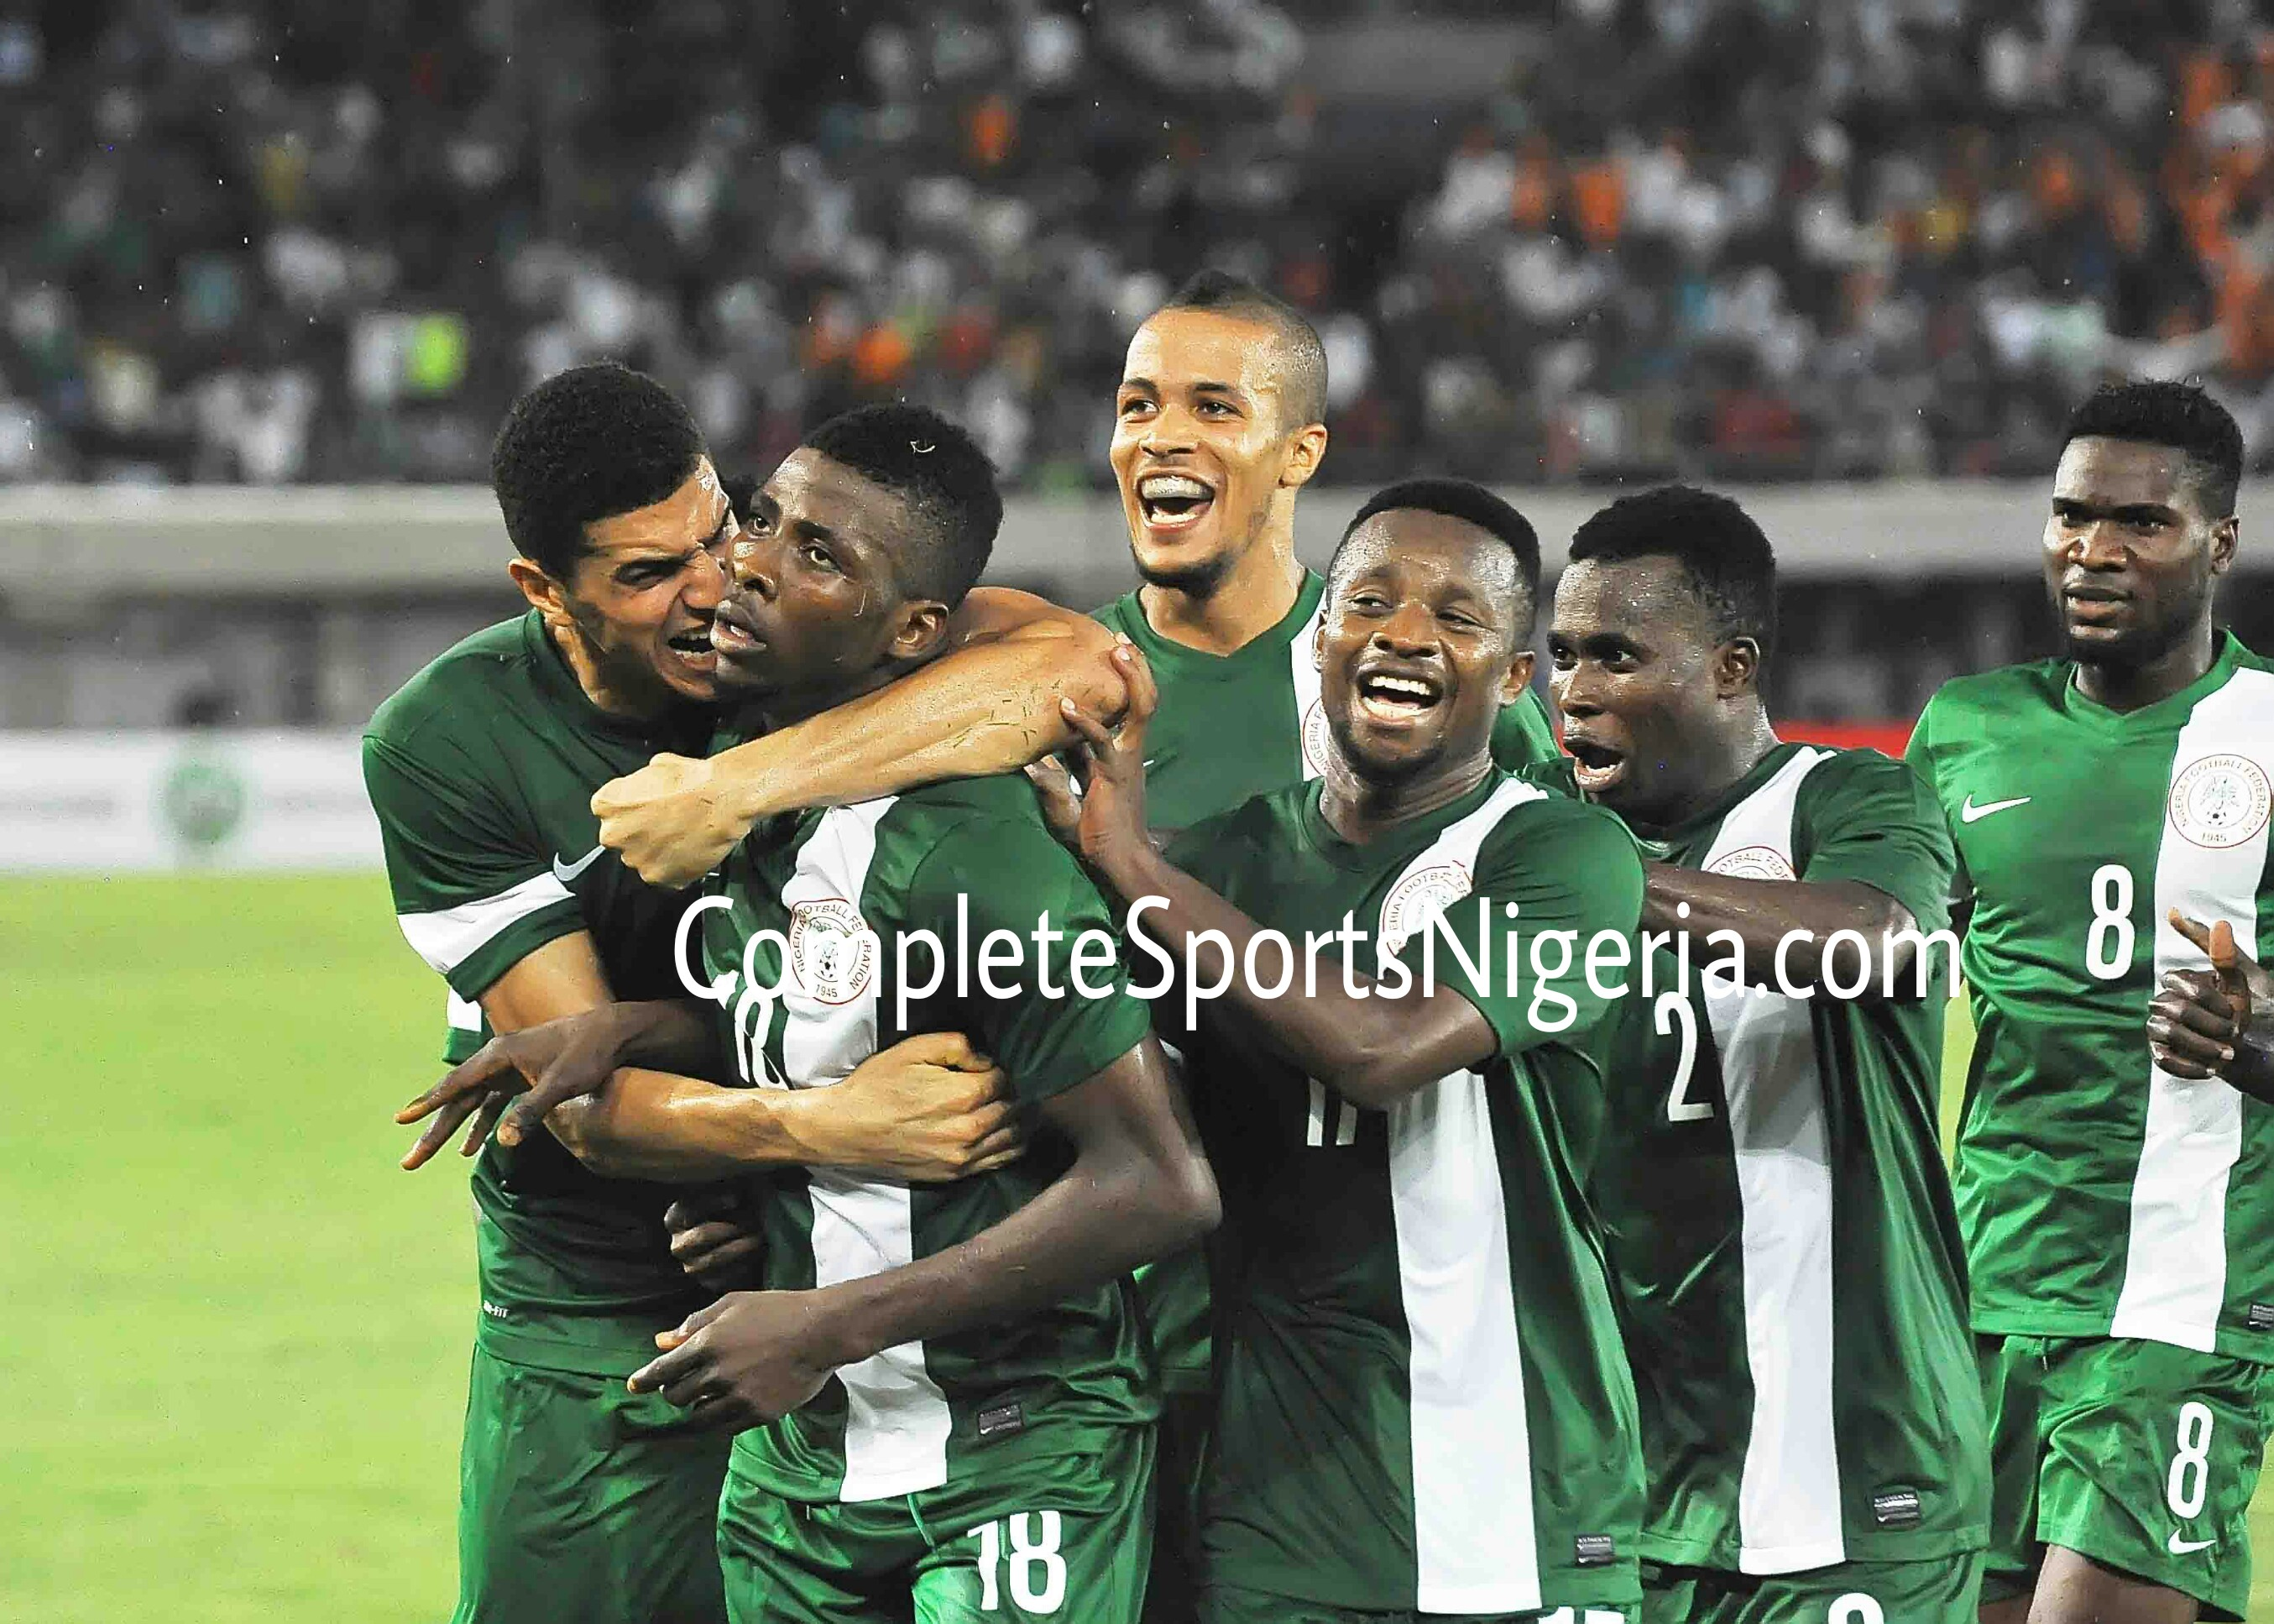 Kpakor: Super Eagles Can Beat Out of Form Chipolopolo